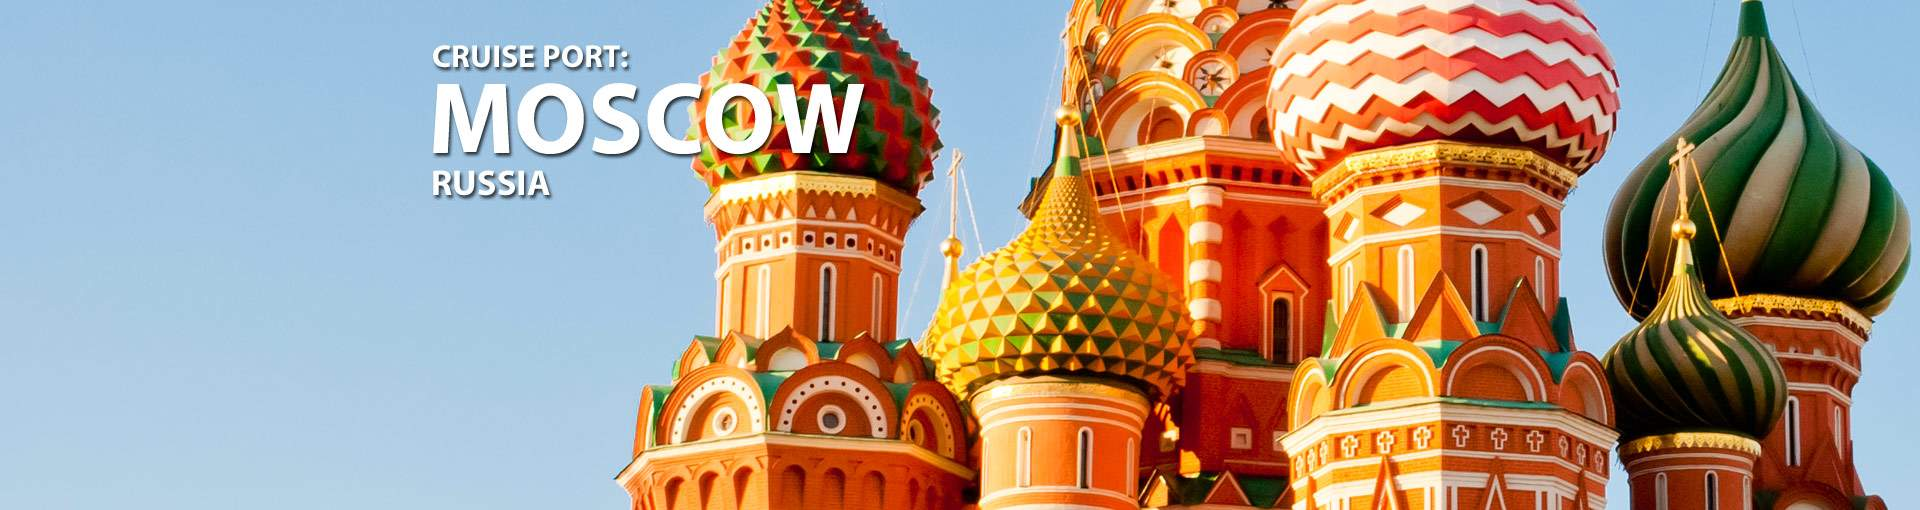 Cruises from Moscow, Russia